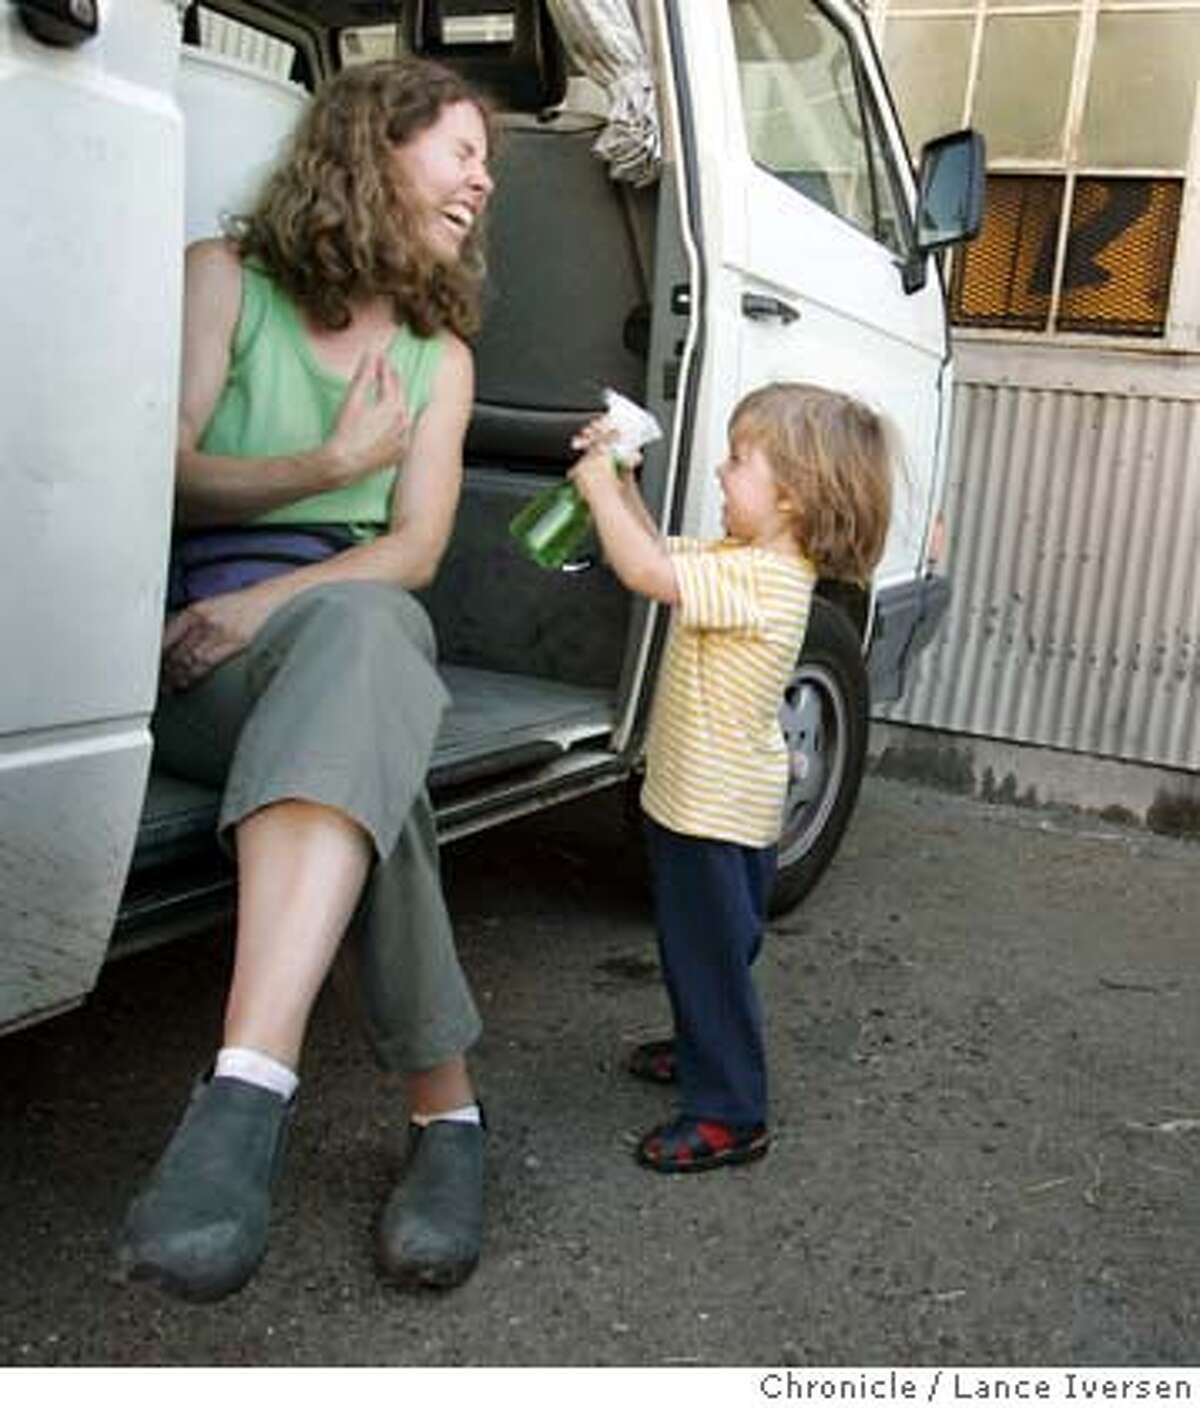 BURNINGKIDSXX_0108_LI.JPG Helen Alvarez gets sprayed with water by her son Felix Harth (cq) age 2 from Berkeley, outside the American Steal Warehouse in Oakland. The warehouse is being used to construct a children�s all steal structure for a children�s play ground at Burning Man on the Black Rock Desert in Nevada this year. Burning Man is earning a new reputation as a sort of desert Disneyland as more and more families from the Bay Area and beyond is hauling the kiddies out to Black Rock City. It was probably inevitable. The Burners, who got their start on a San Francisco beach, are growing up and having kids but don't want to stop frolicking in the desert. They say it's a great place for kids to express themselves and experience interactive art, as long as they can manage the heat, the dust storms and the occasional downpour. And they say the sex and drugs, while certainly there, are avoidable. And seeing naked people never really hurt anyone. By Lance Iversen/San Francisco Chronicle